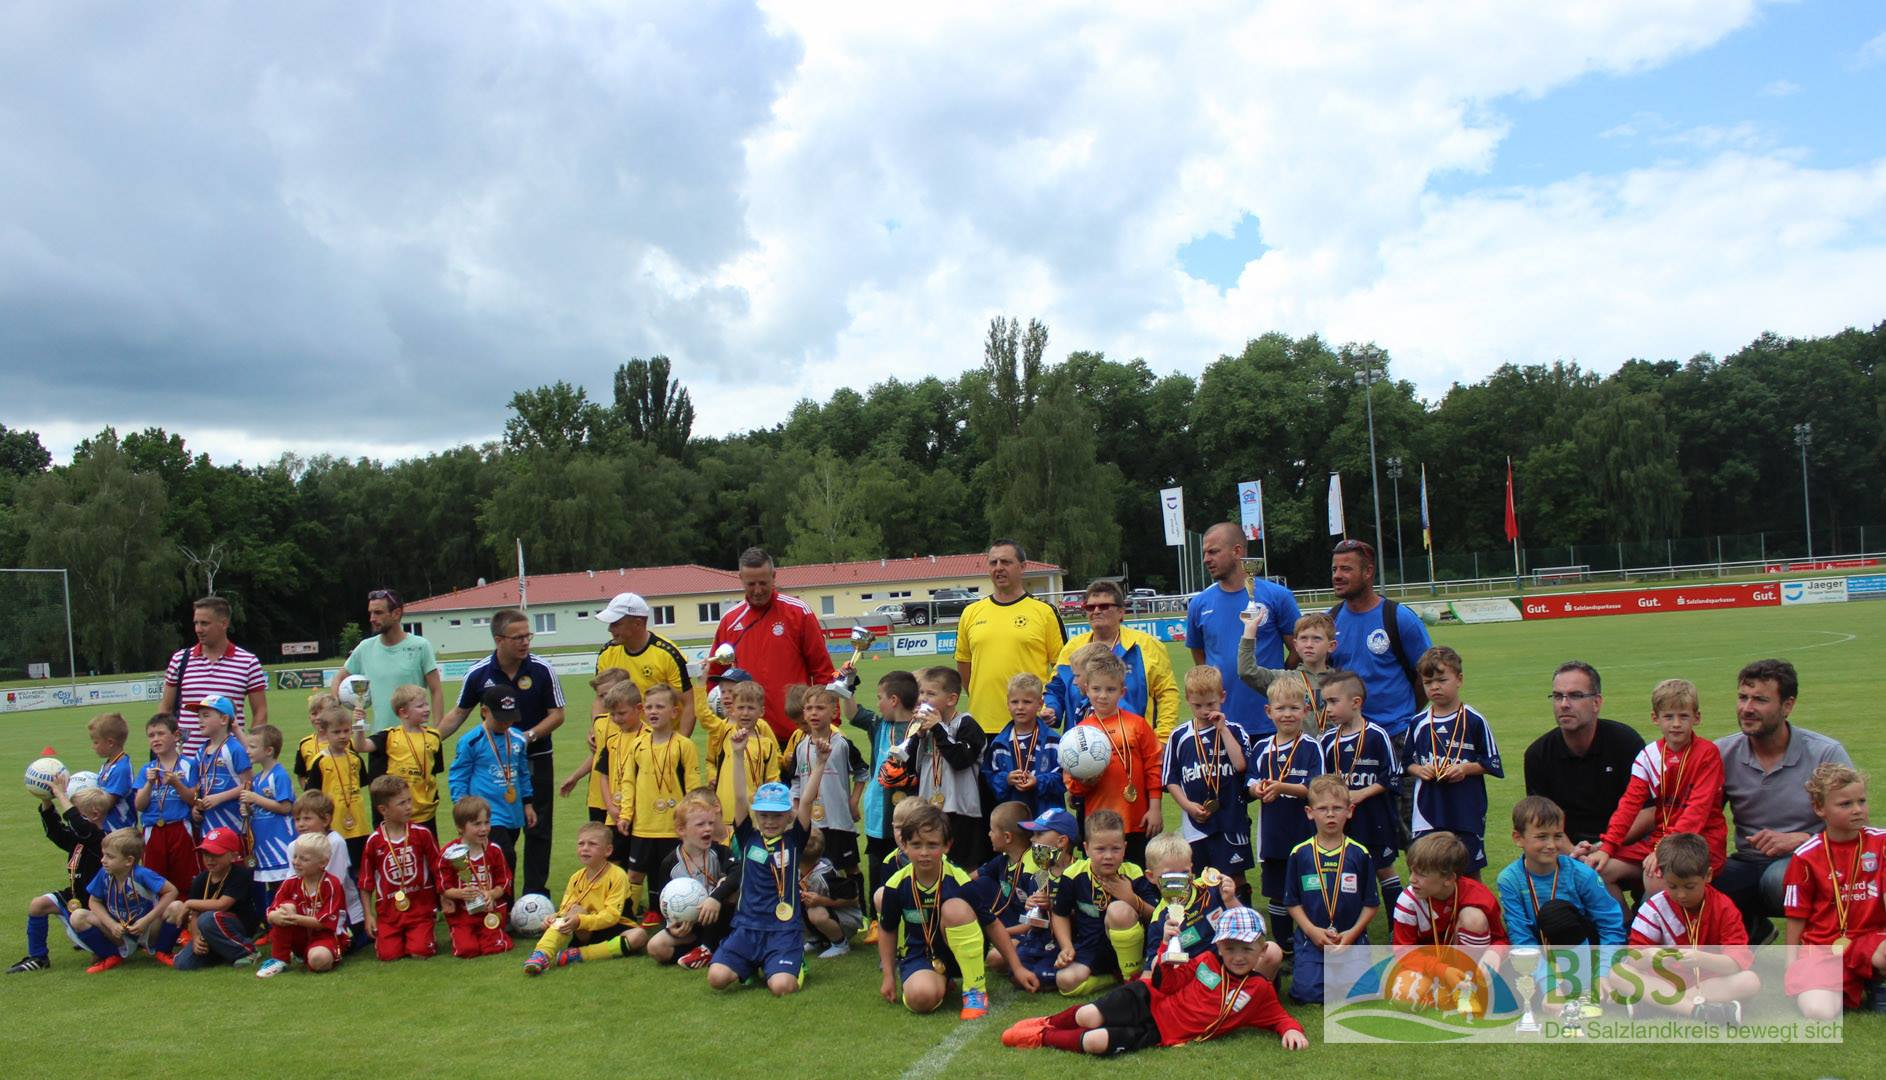 BISS-CuP_G-Jun.-Alles Sieger-8Teams